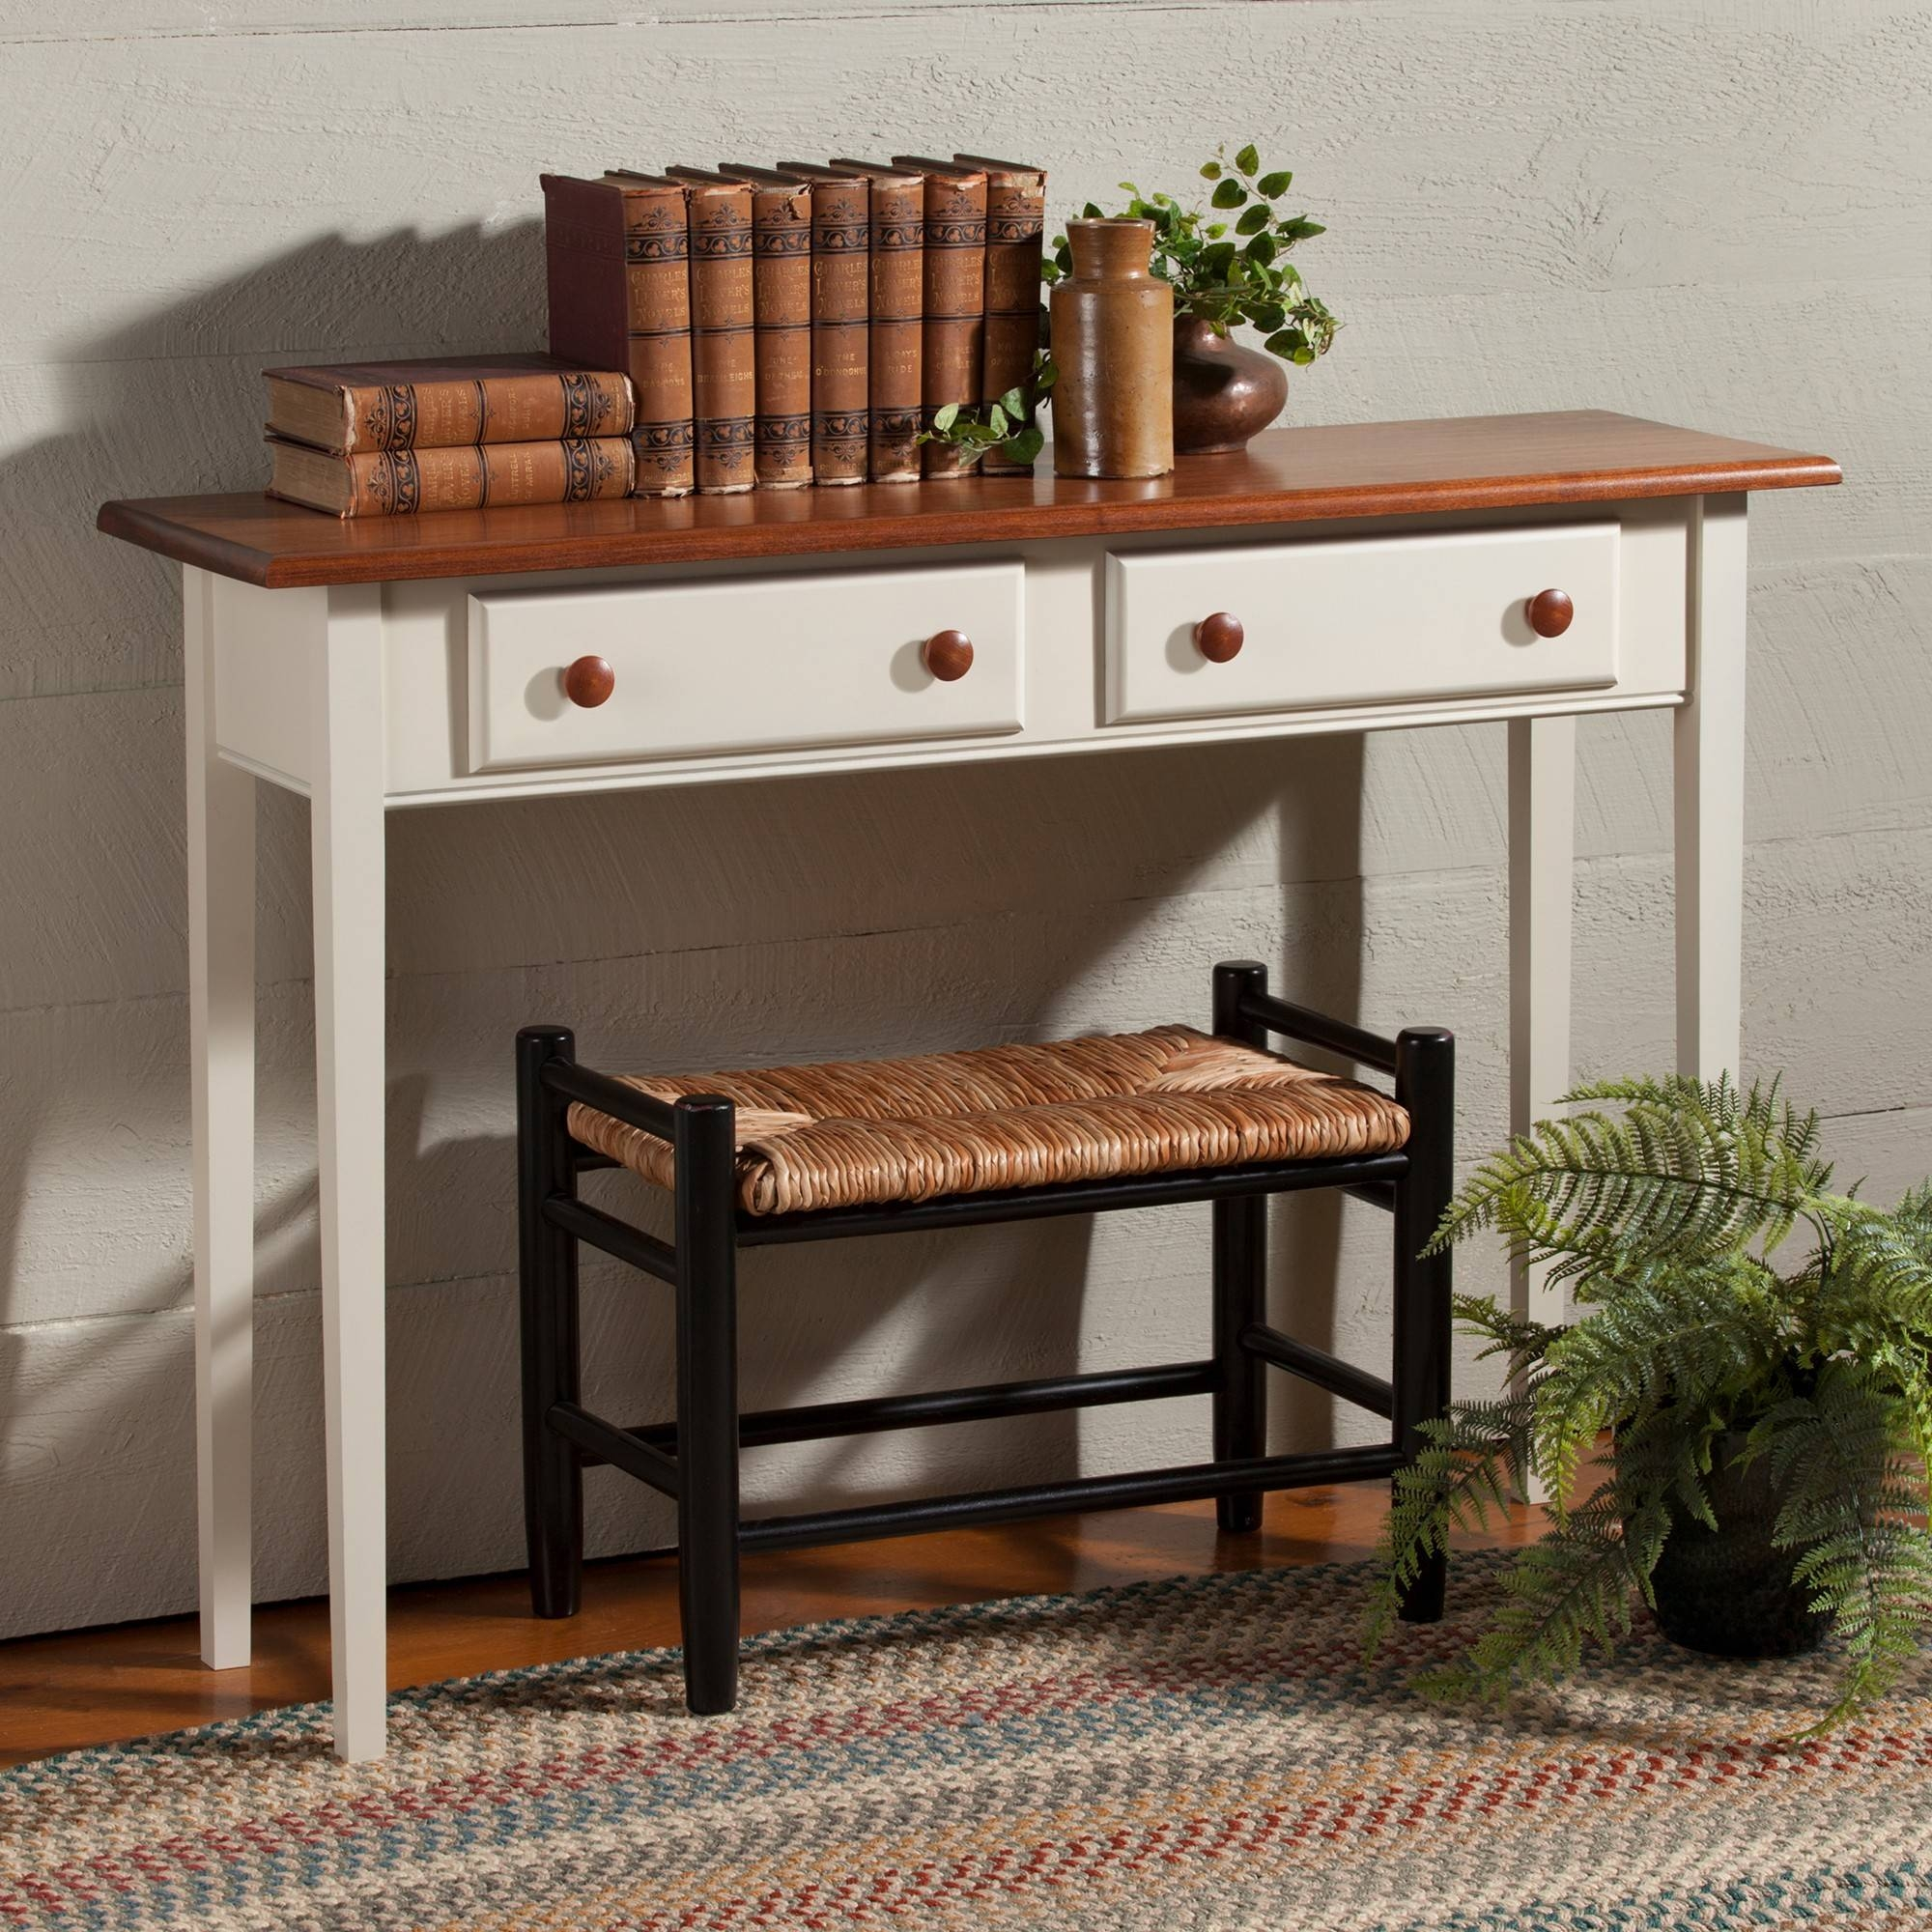 Country Shaker Sofa Hall Table | Sturbridge Yankee Workshop for Country Sofa Tables (Image 8 of 15)